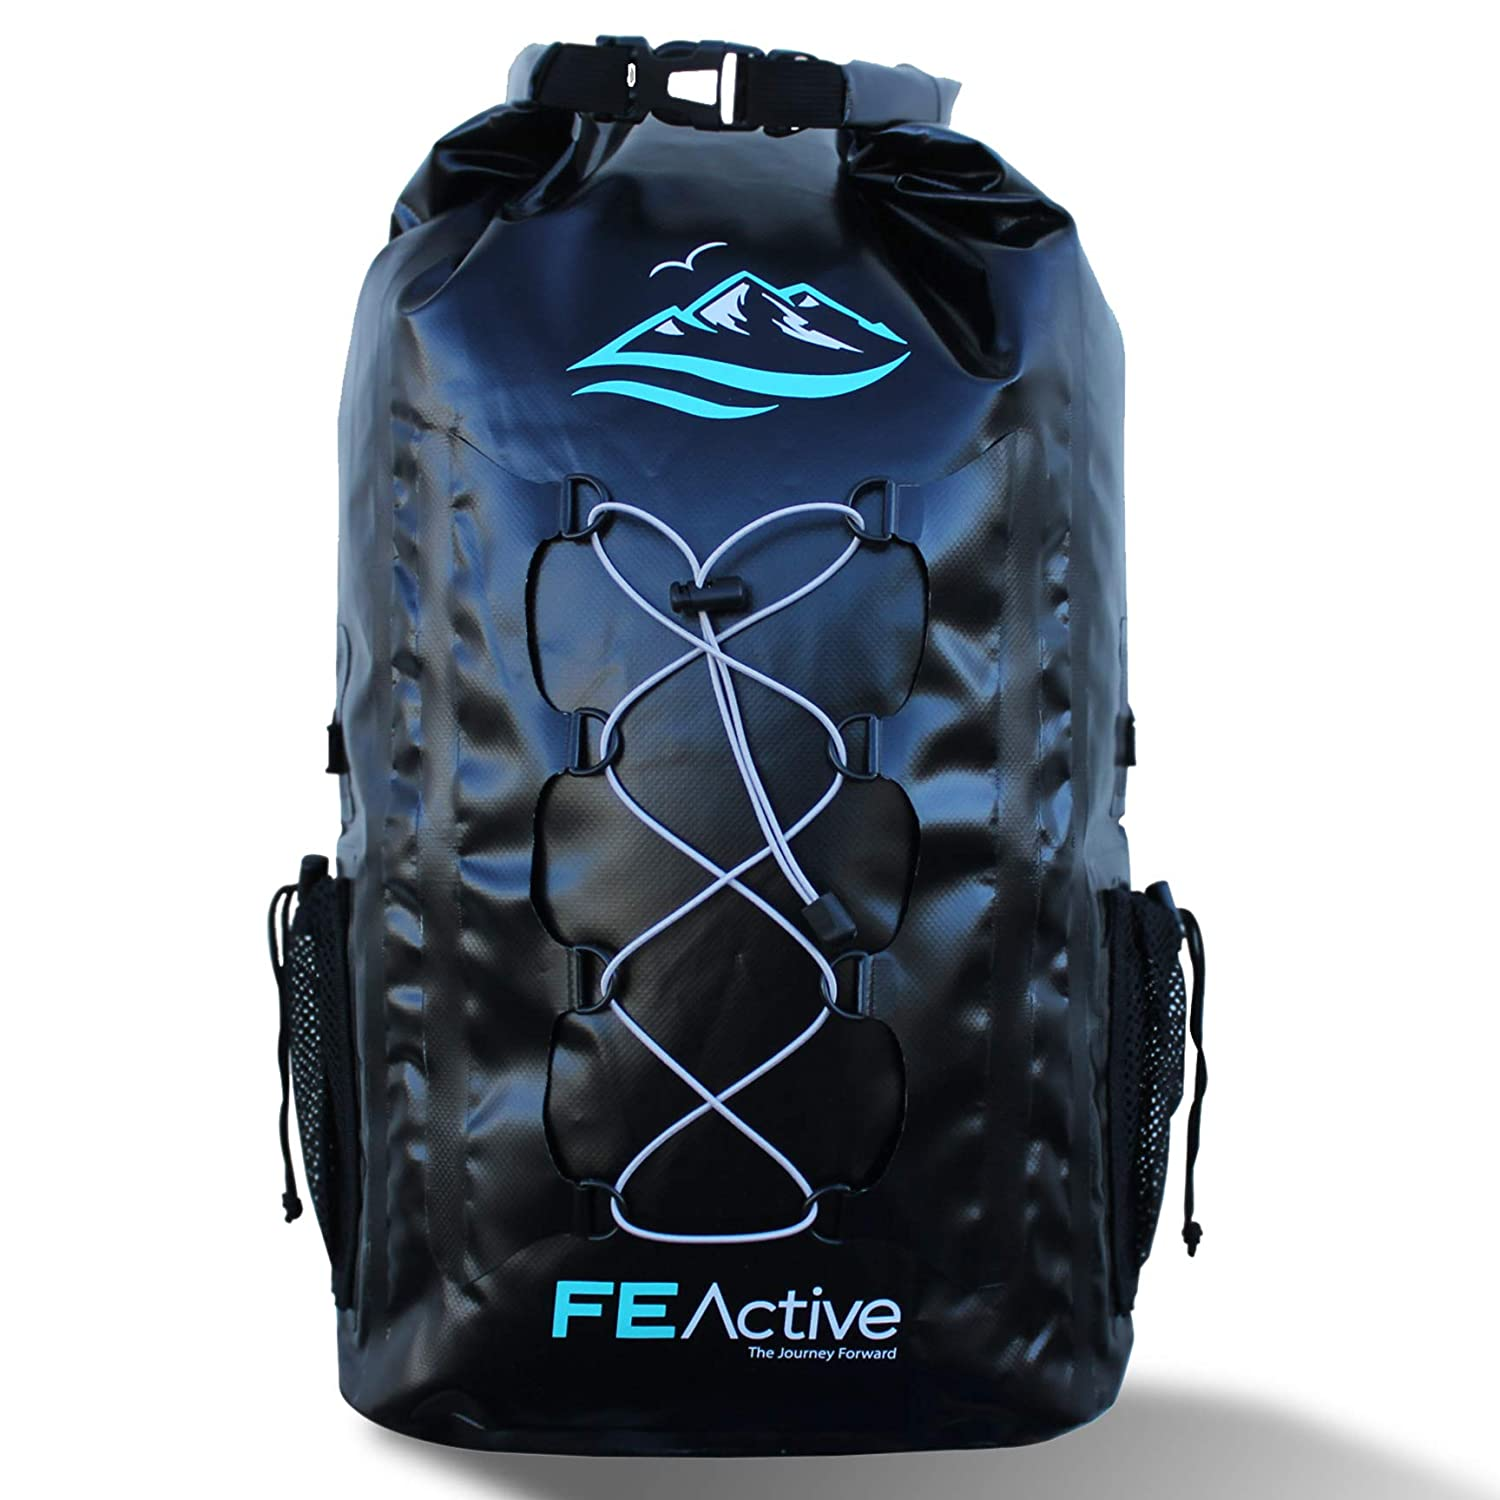 FE Active – Mochila Impermeable Ecológica 30L